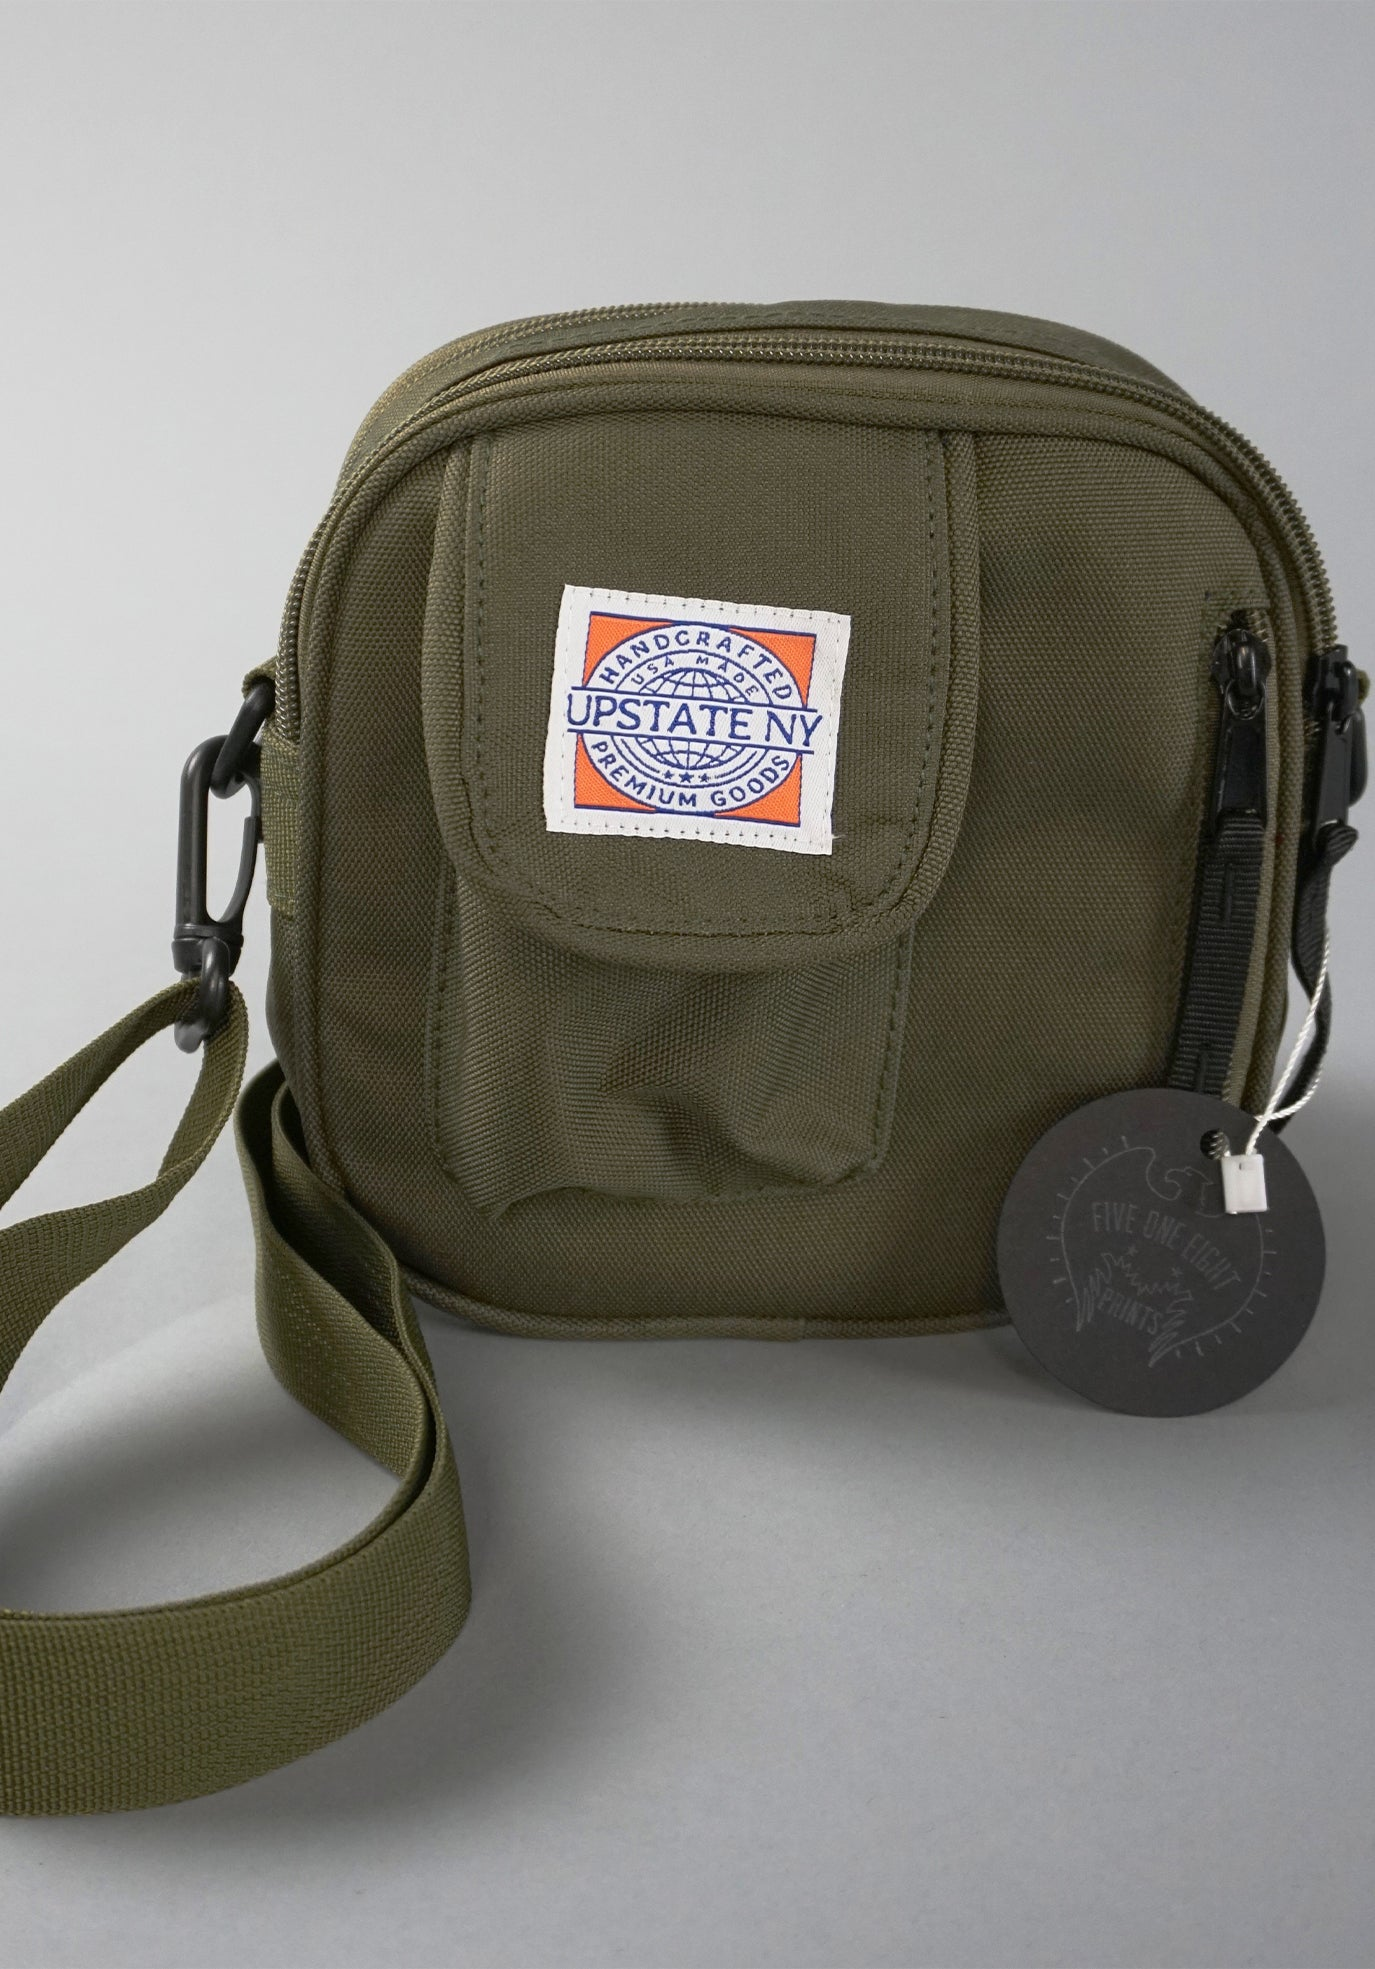 Essentials bag in olive green, showing detail of bag structure and custom Upstate NY sewn-on patch.